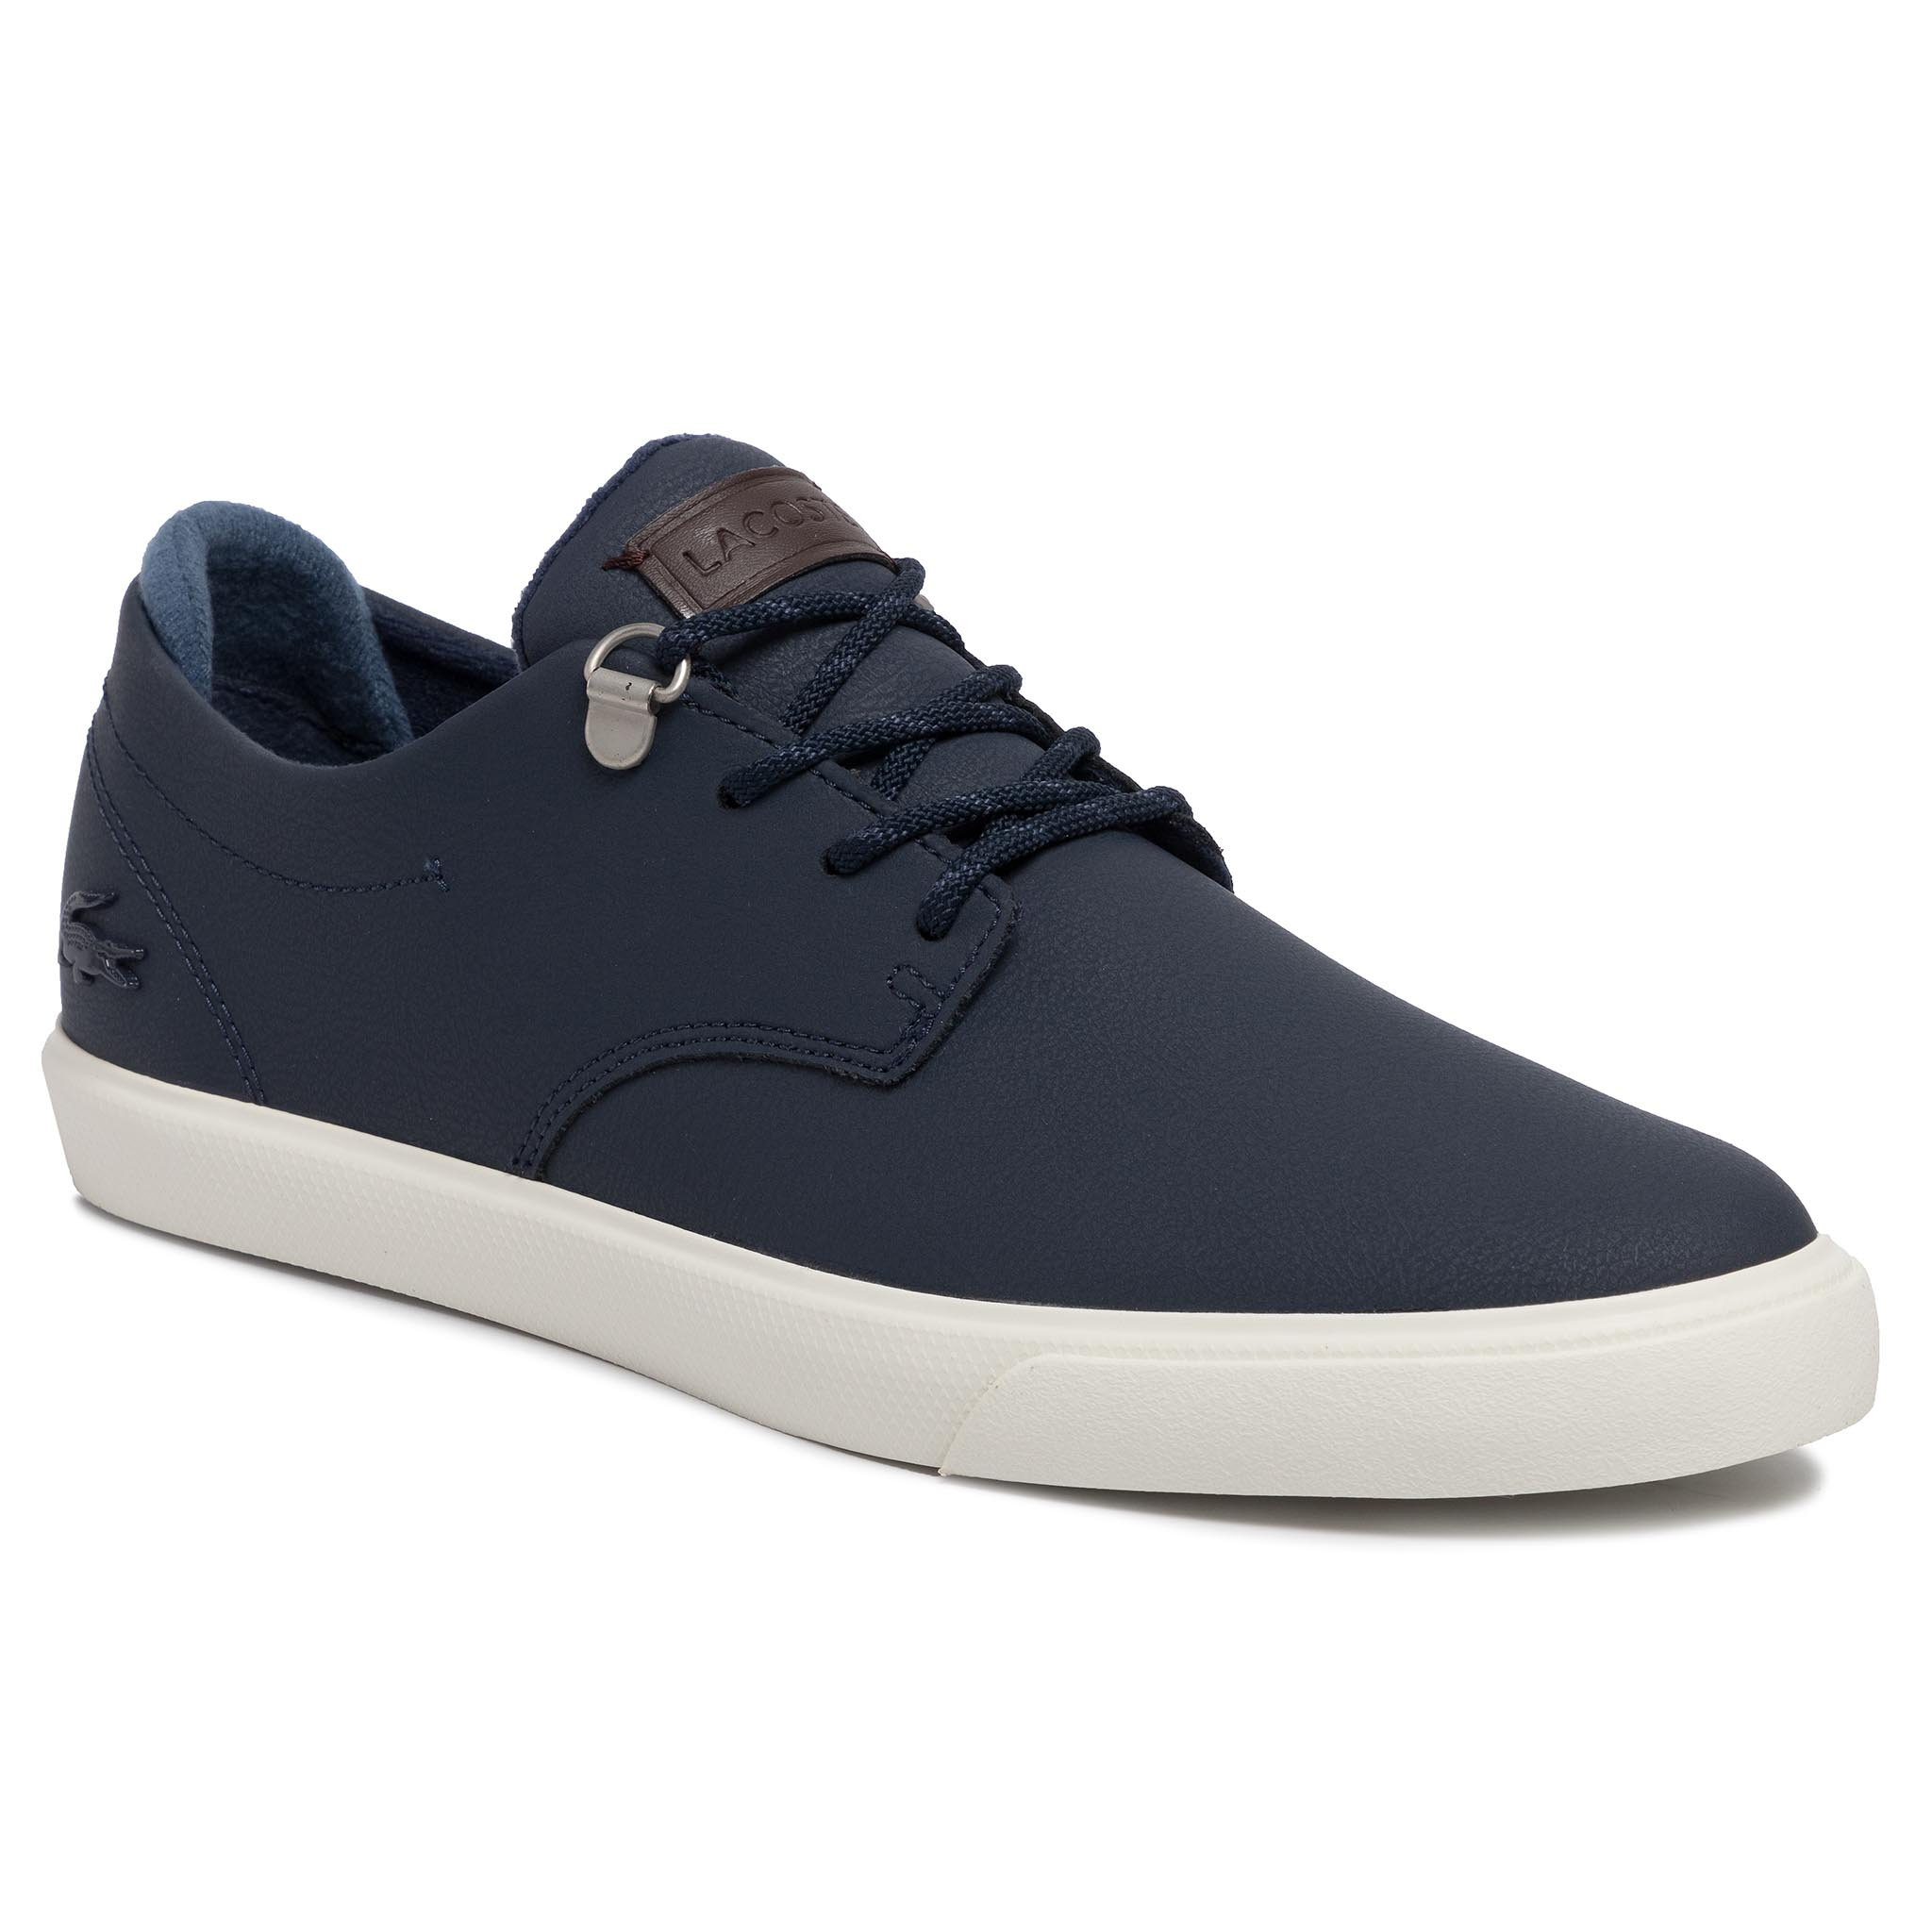 Sneakers LACOSTE - Esparre 319 3 Cma 7-38CMA0040ND1 Nvy/Dk Blu